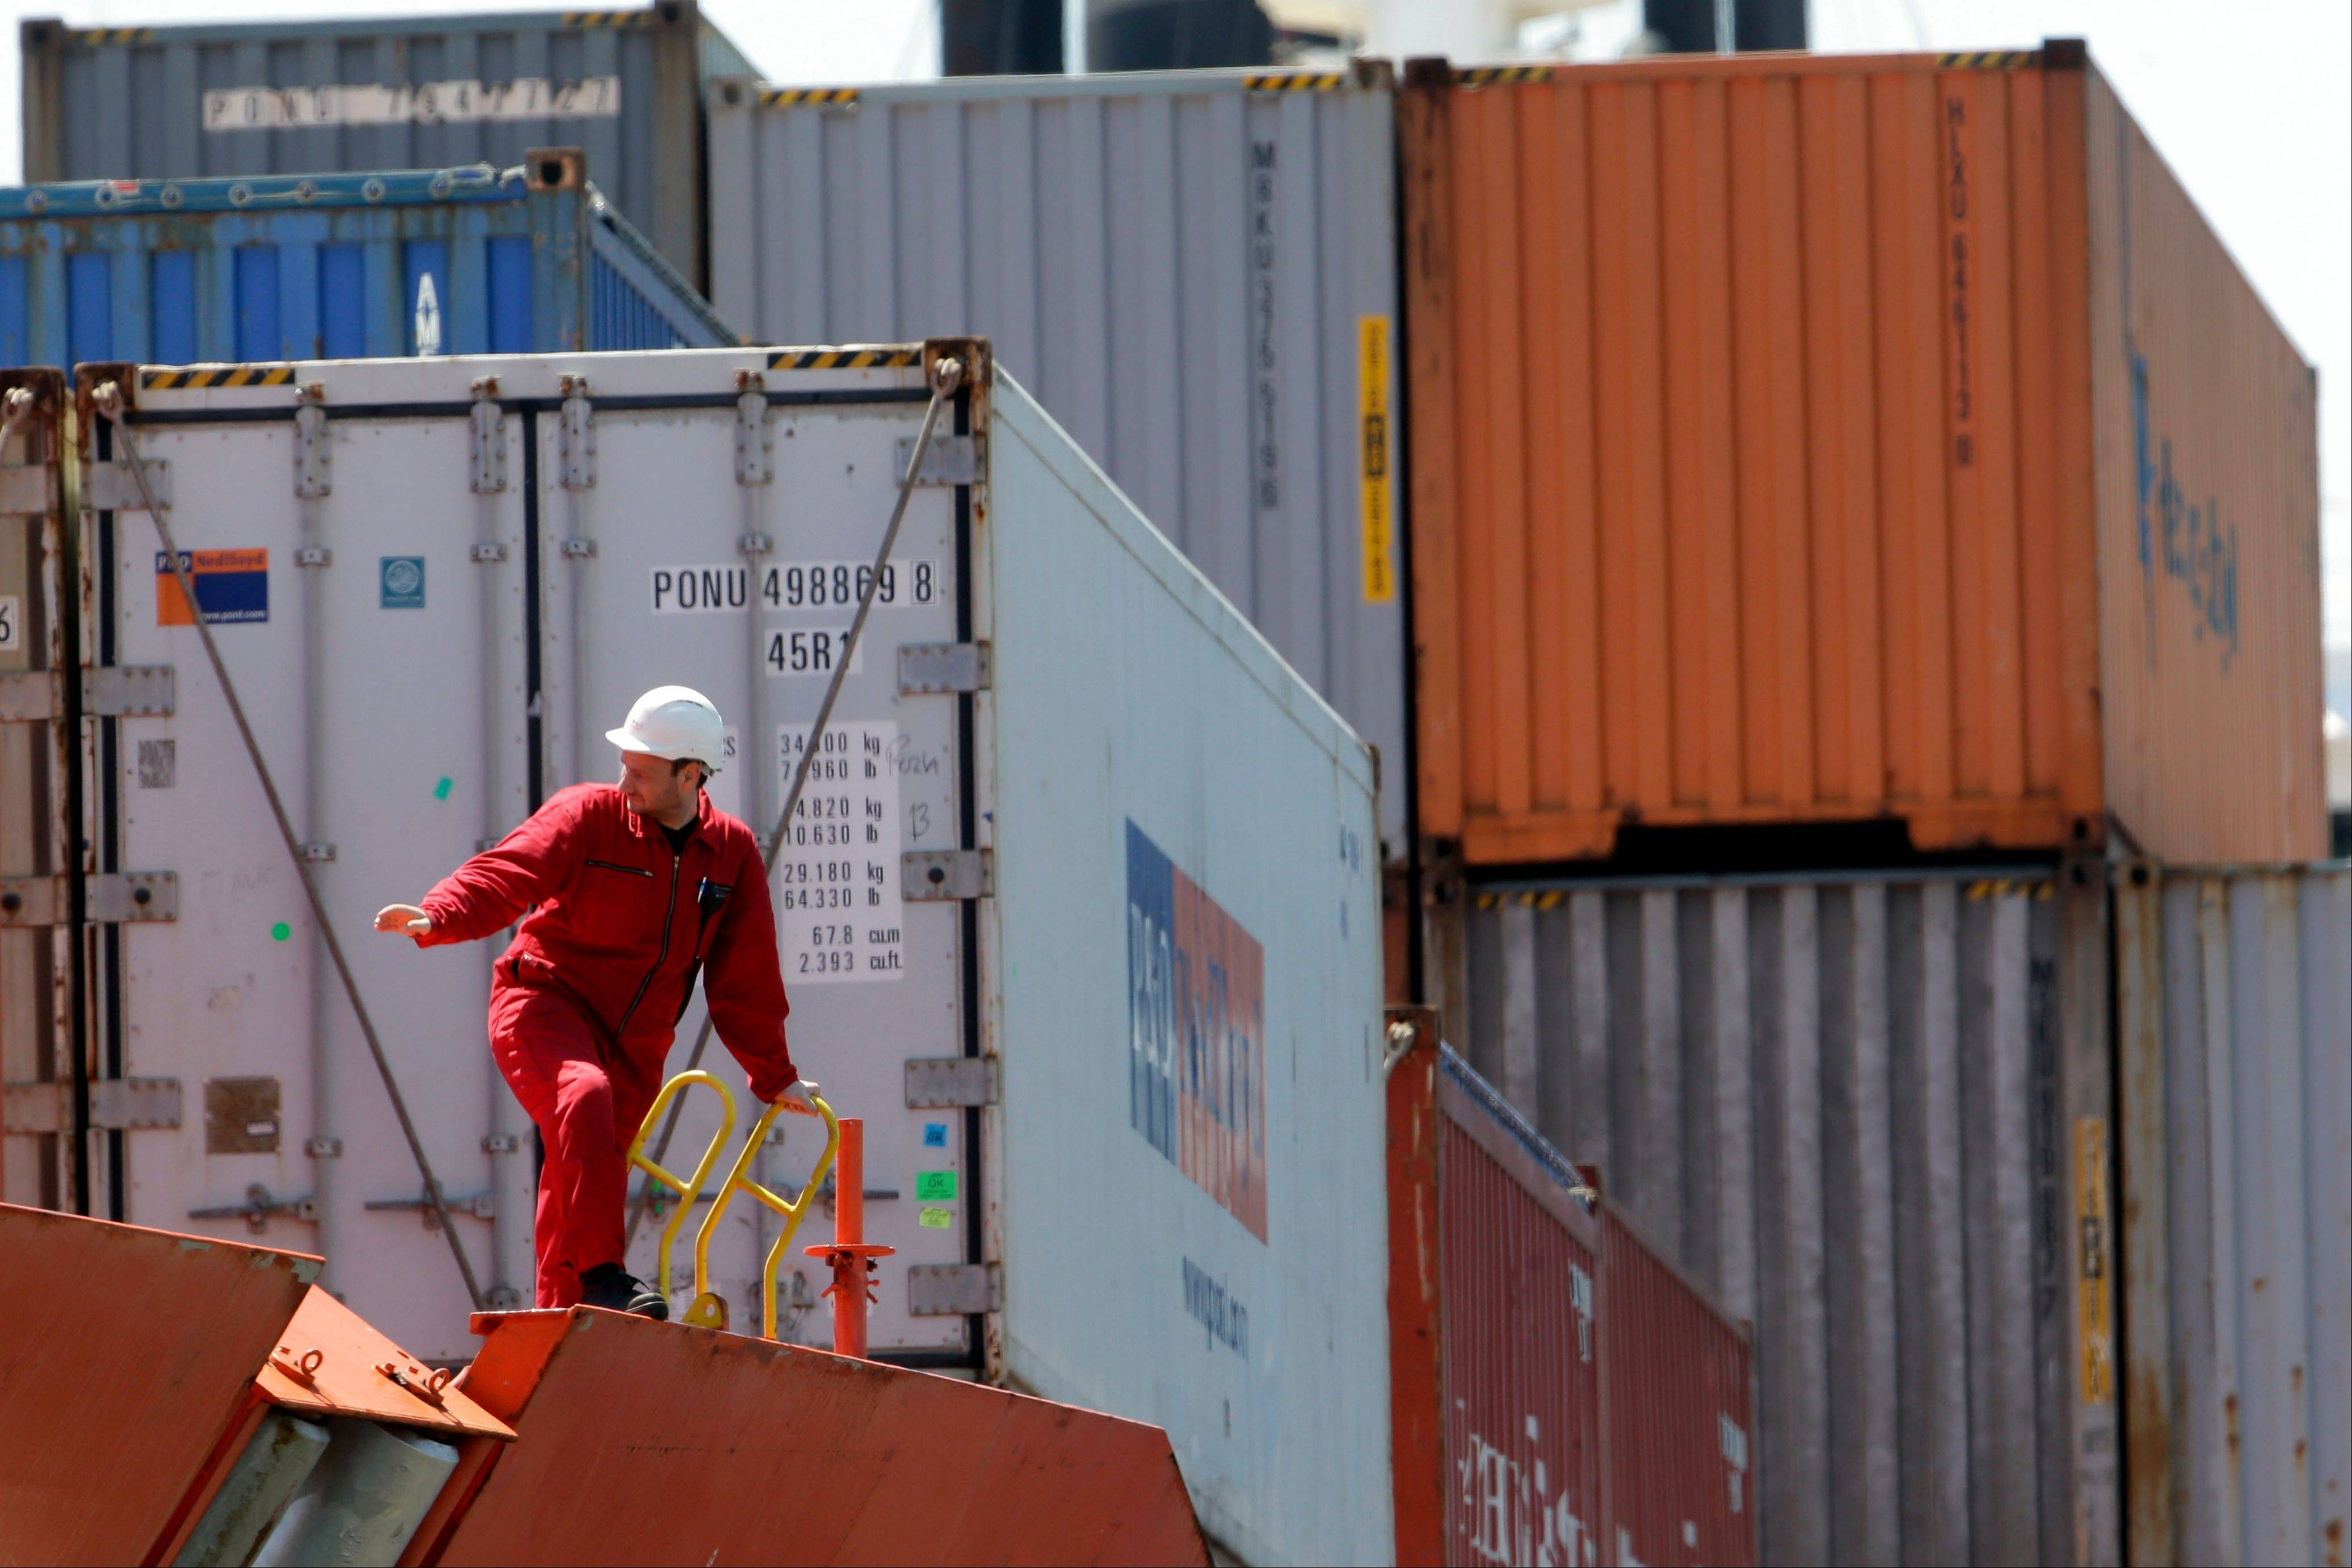 Cargo containers are docked at Packer Avenue Marine Terminal, in Philadelphia. Inventories at U.S. wholesalers unexpectedly declined in May by the most since September 2011 as sales surged, pointing to a pickup in orders and production.